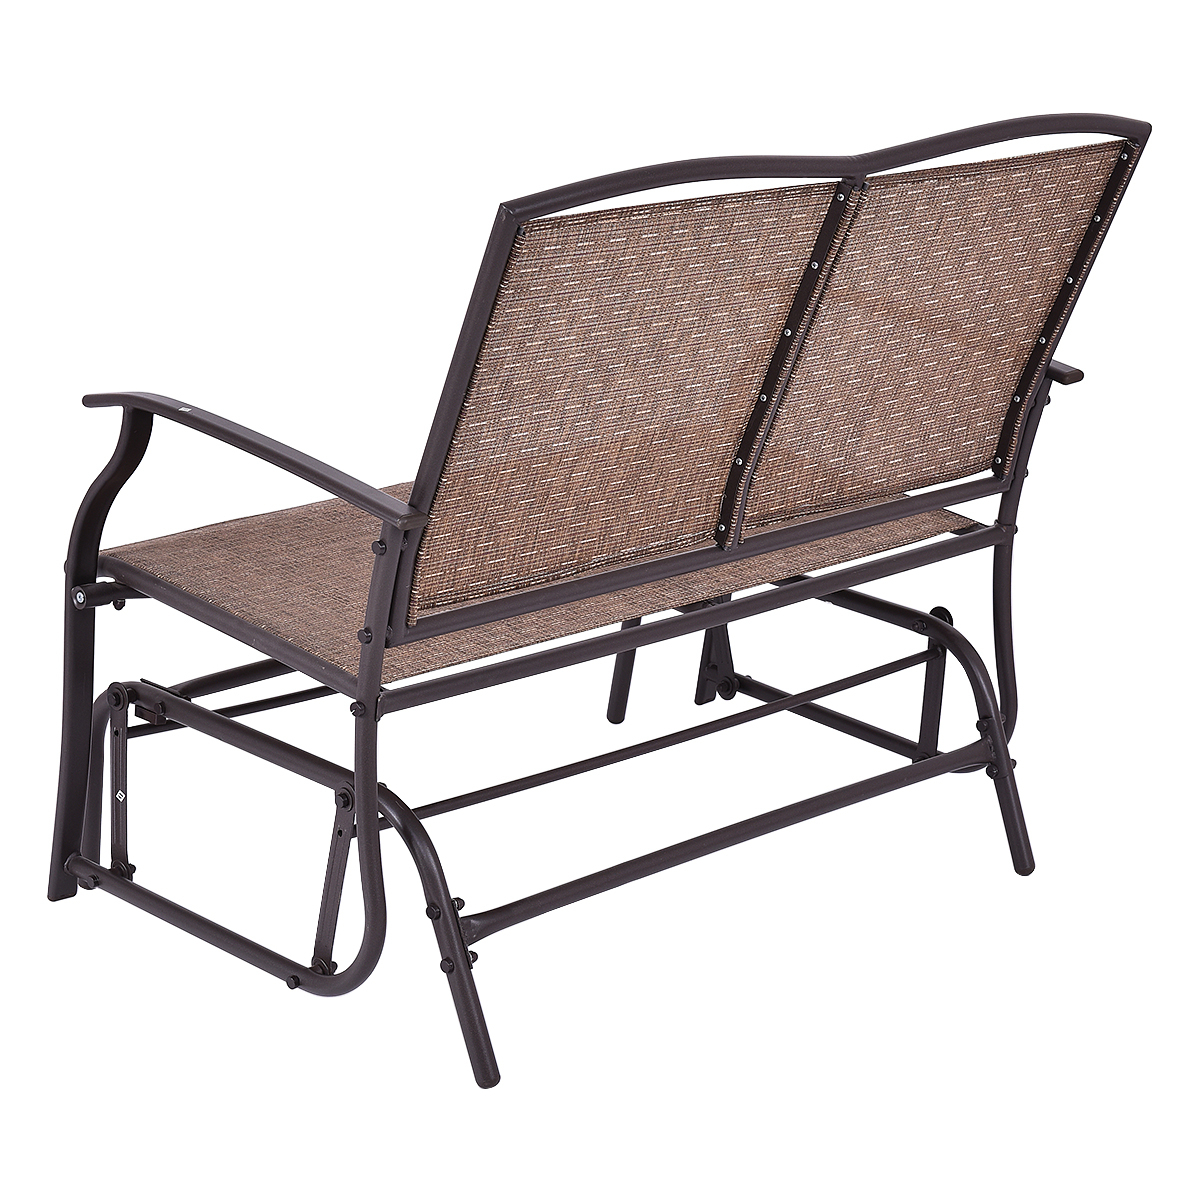 Costway Patio Glider Rocking Bench Double 2 Person Chair Within Famous Iron Double Patio Glider Benches (Gallery 21 of 30)